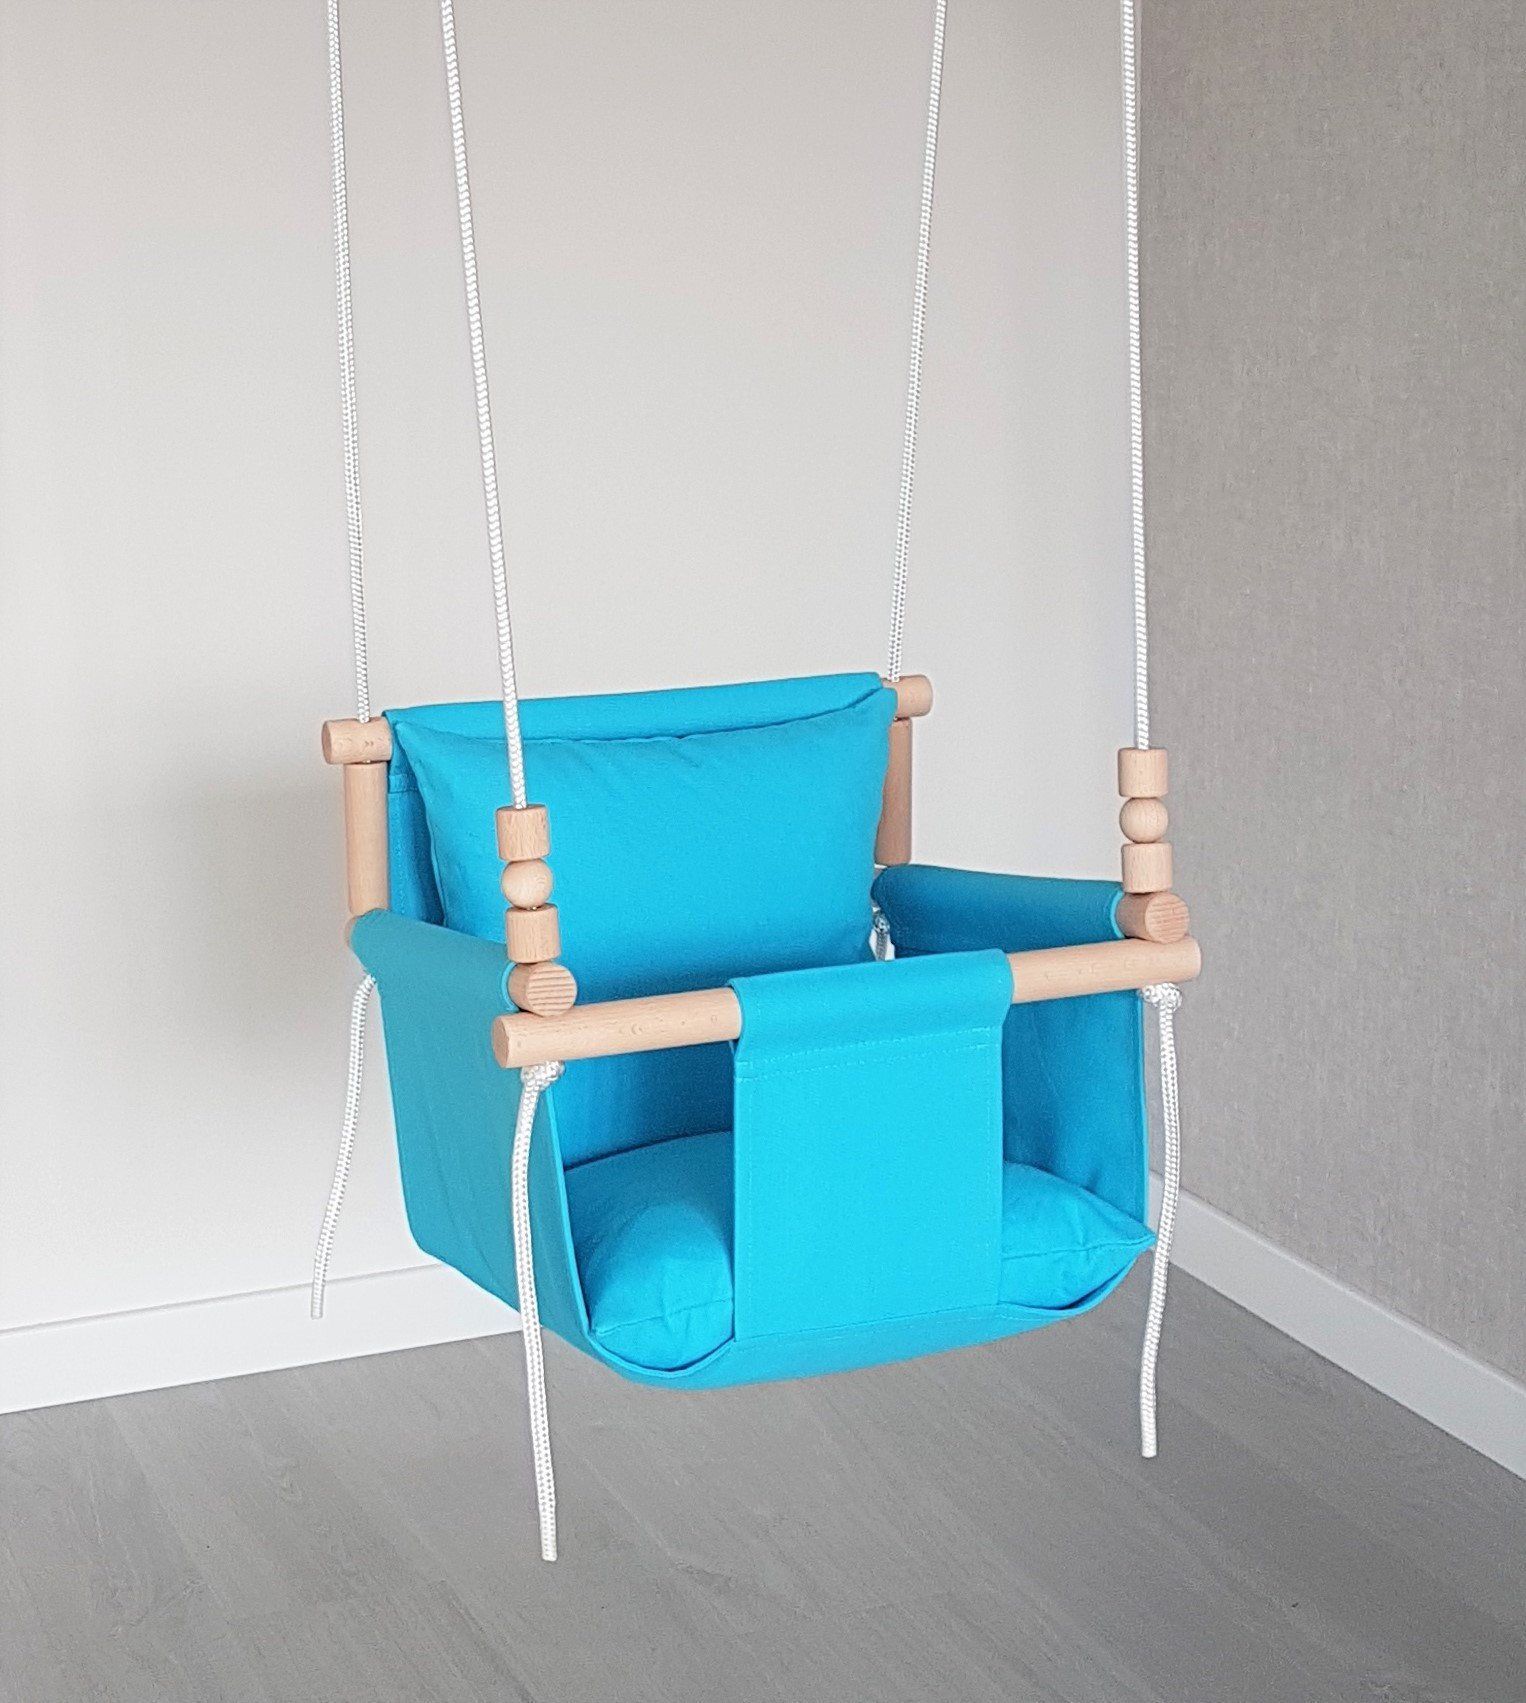 Comfortable Design Turquoise Baby Swing Ships Fast Toddler Swing Natural Swing Cotton Swing Indoor Swing Swing Baby Swing Chair Baby Swing Chair Baby Swings Toddler Swing